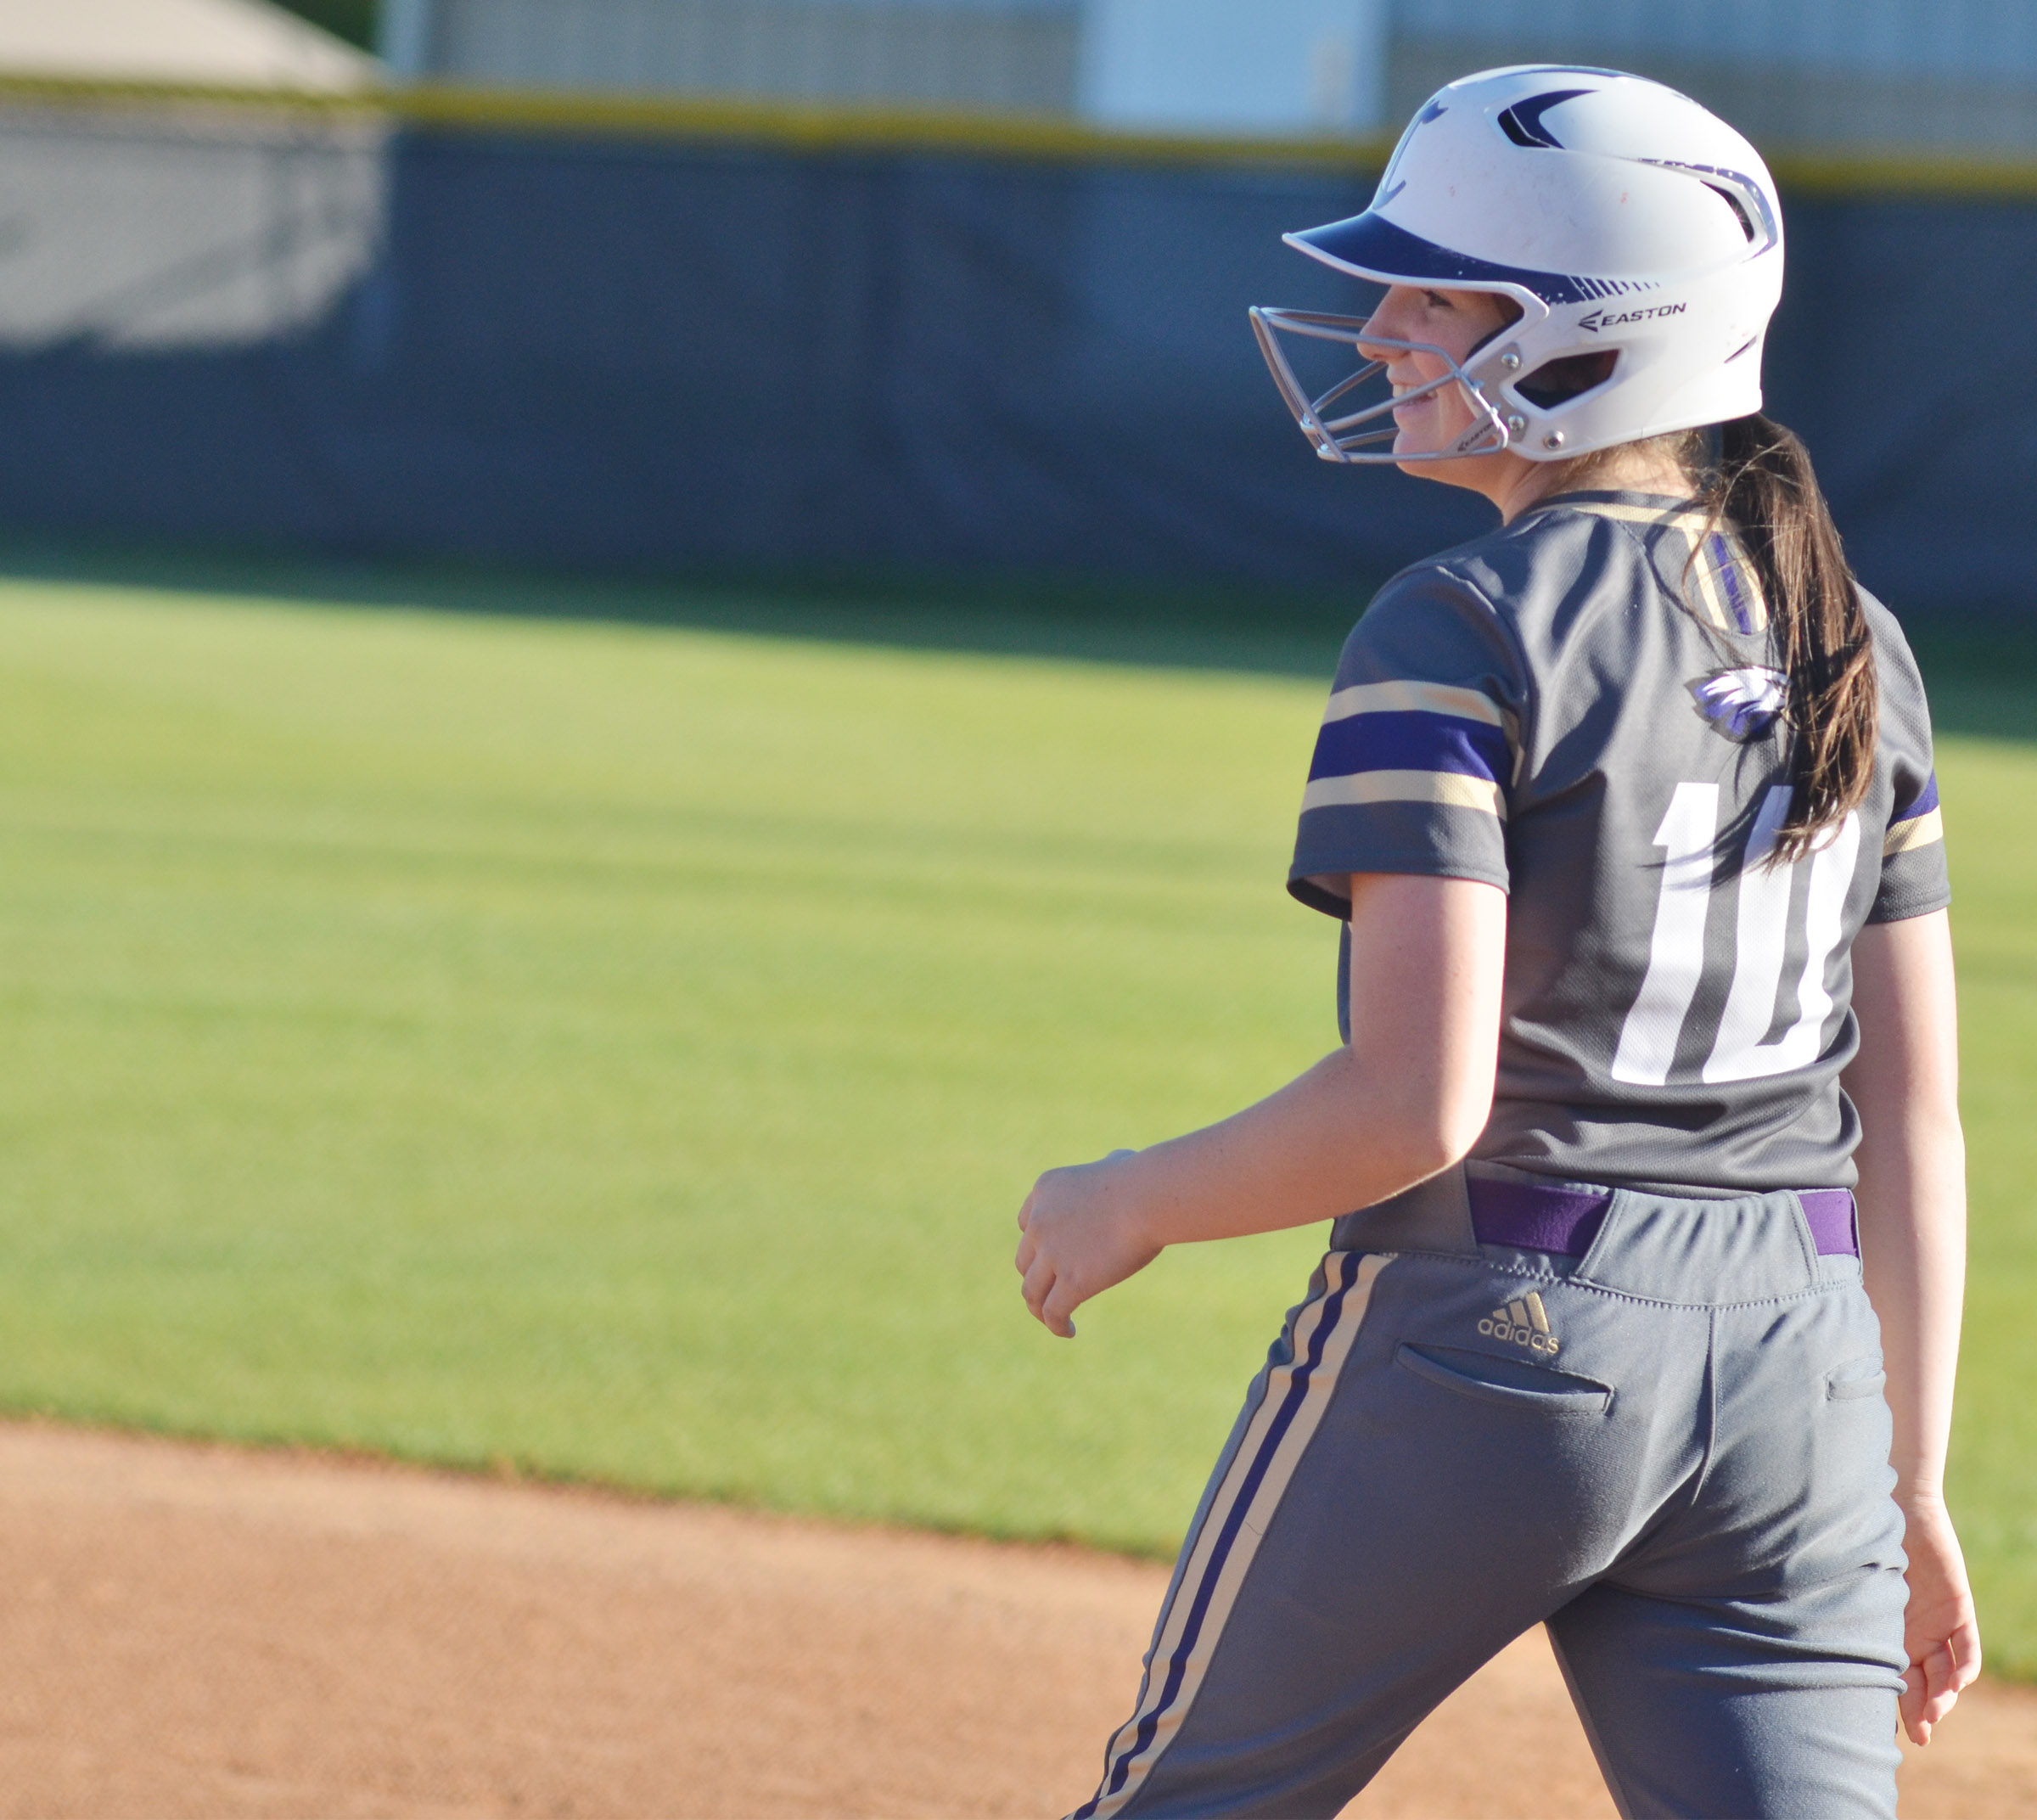 CHS freshman Sydney Wilson smiles after getting a hit.